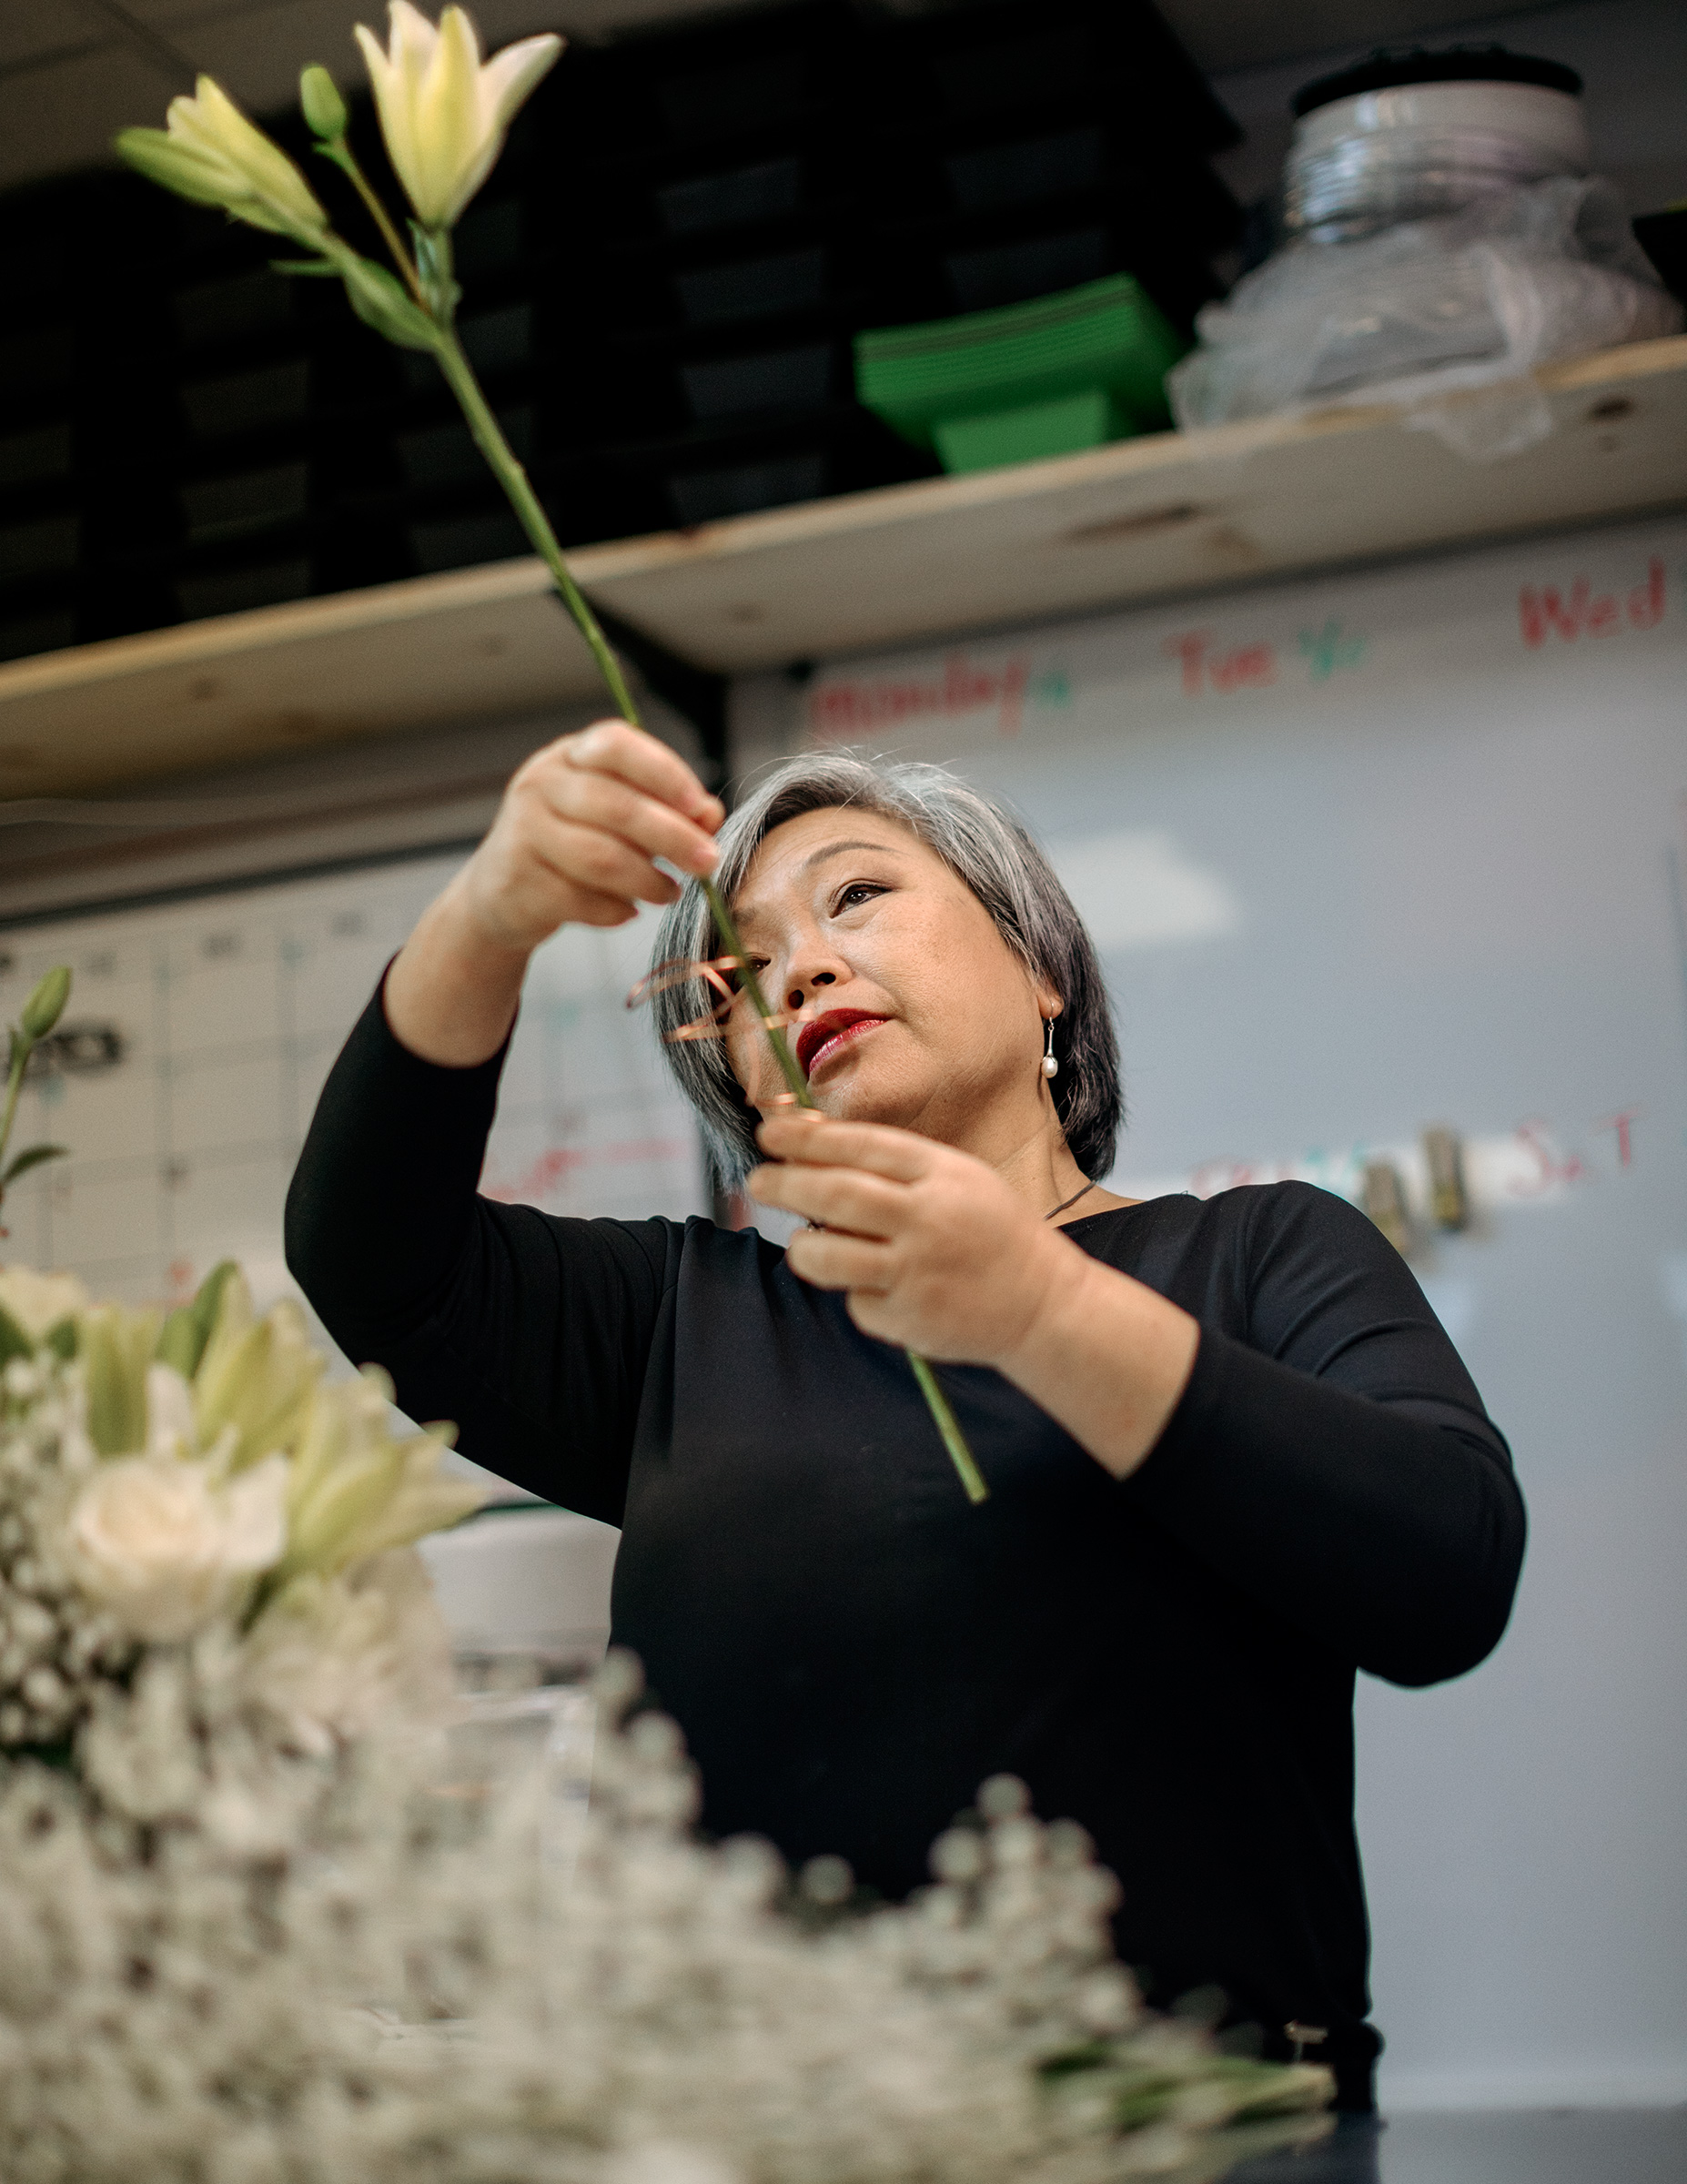 "Eileen Cheng, 60, Florist, Fort Lauderdale, Fla. ""Everything just went down to zero,"" says Cheng, who has owned Yacht Flowers with her daughter since 2009. The shop primarily provided arrangements to private yachts, but few people are making use of luxury pleasure cruisers lately. Cheng is worried about what this could mean for her retirement: ""I'm asking myself, Am I able to recover?"""